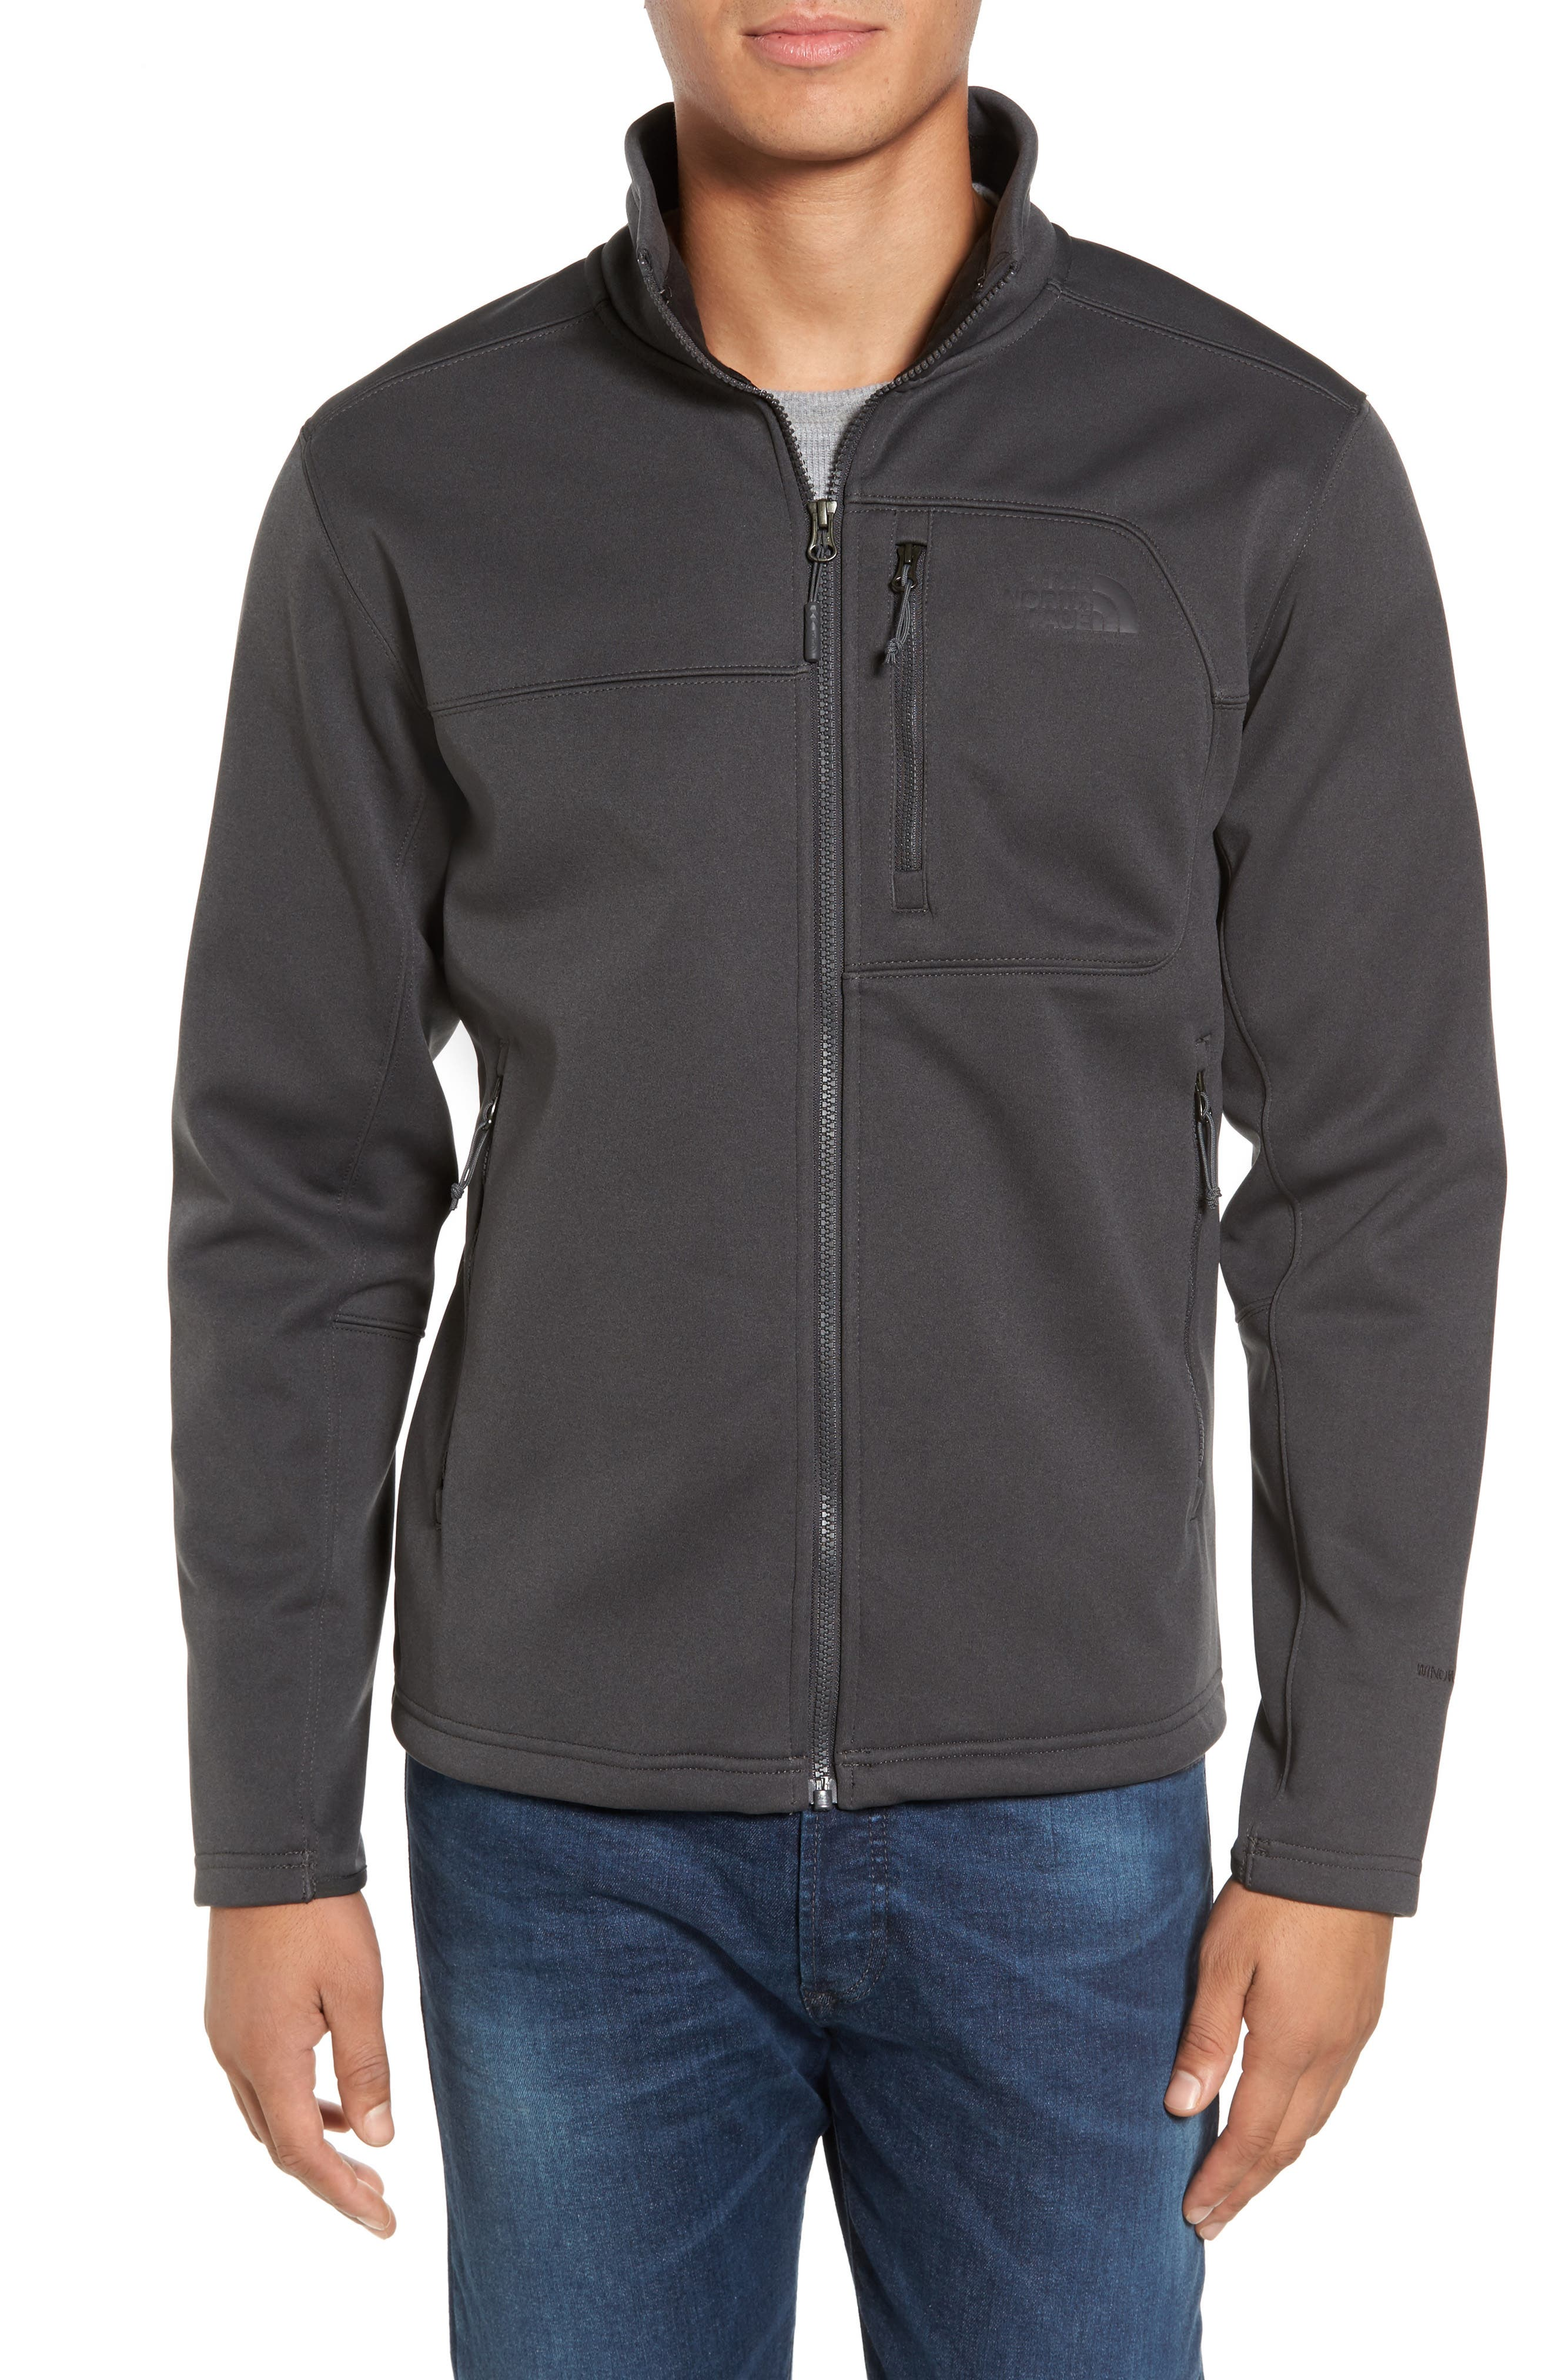 Alternate Image 1 Selected - The North Face Apex Risor Jacket